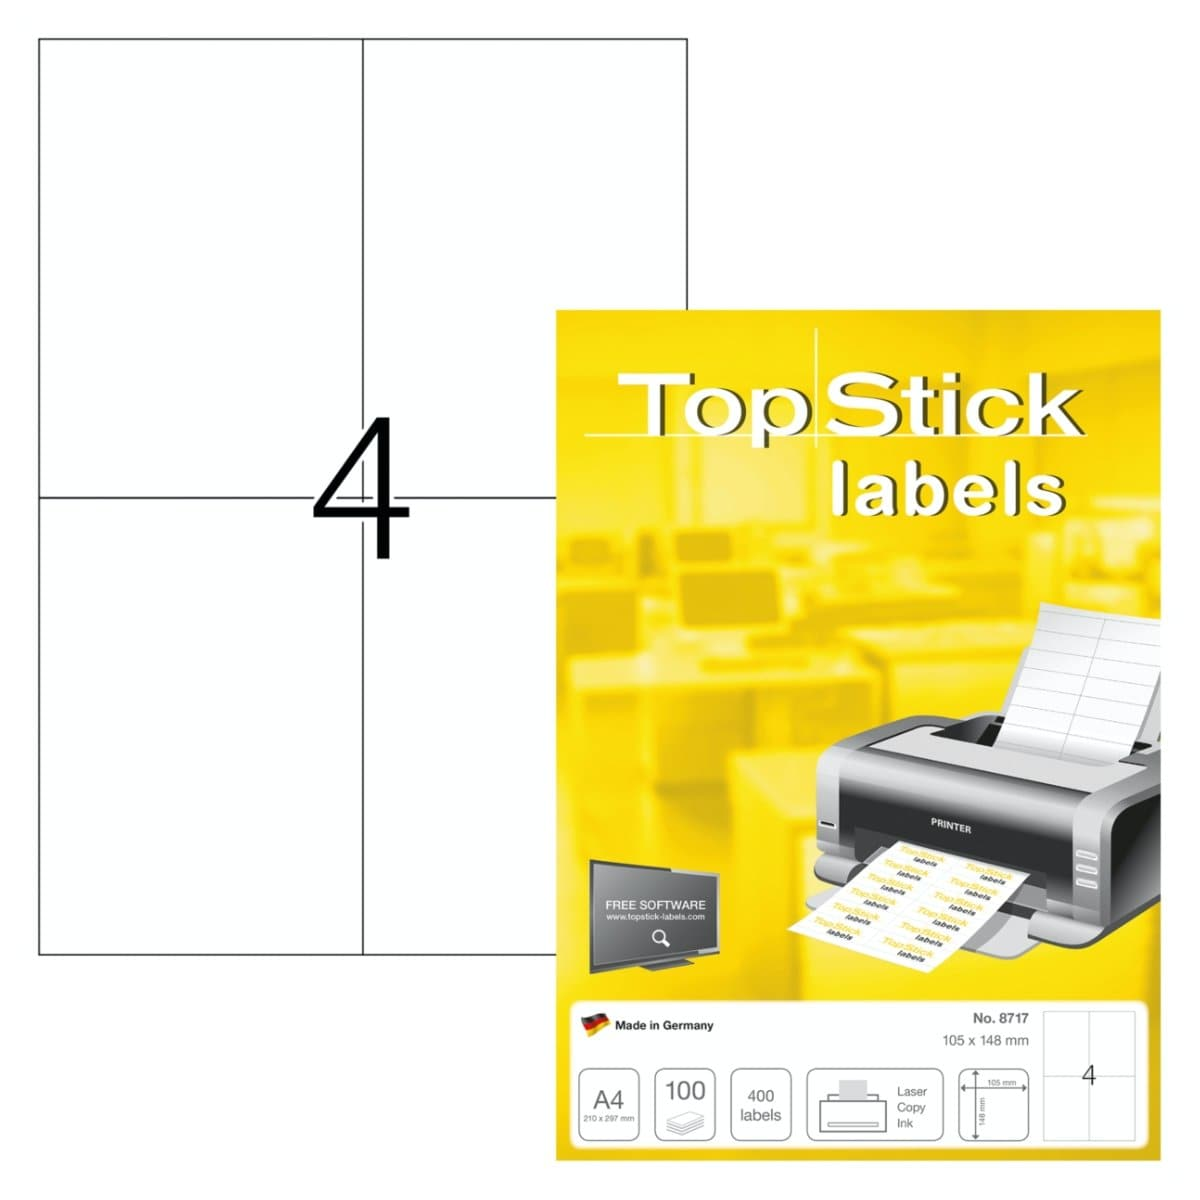 TopStick labels 4 labels/sheet, sharp corners, 105 x 148 mm, 100sheets/pack, White